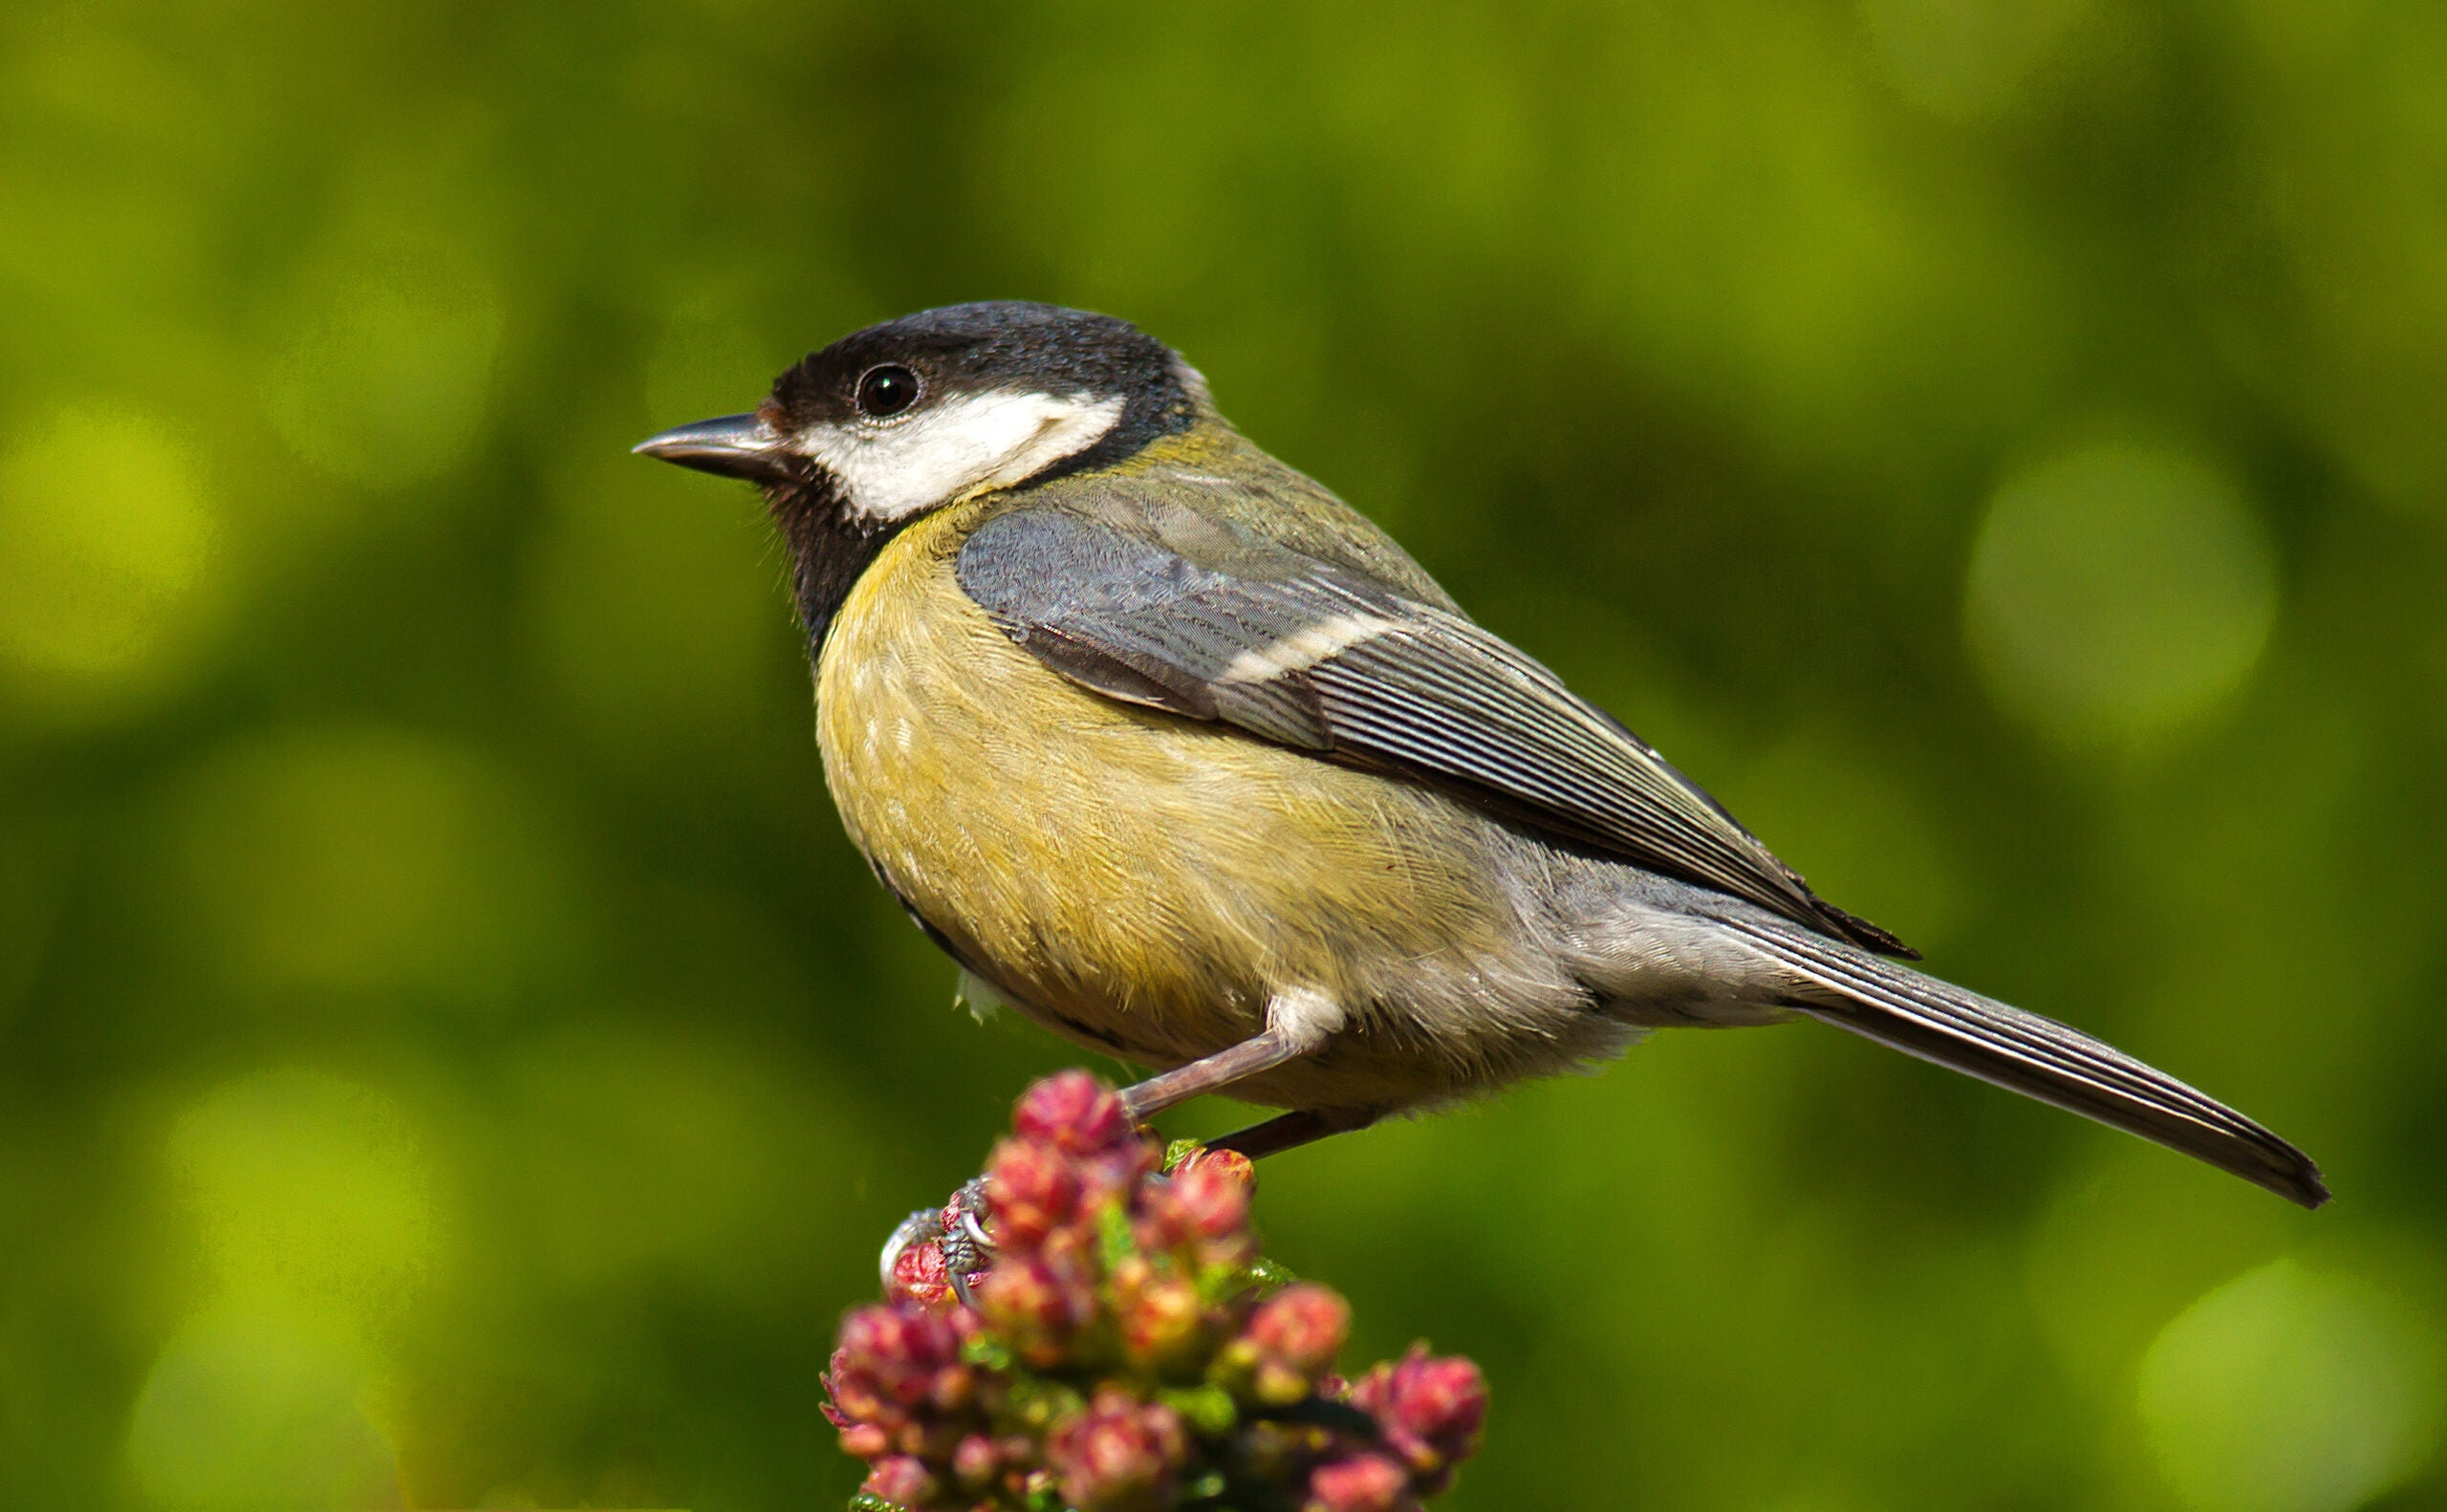 a great tit perches on some foliage